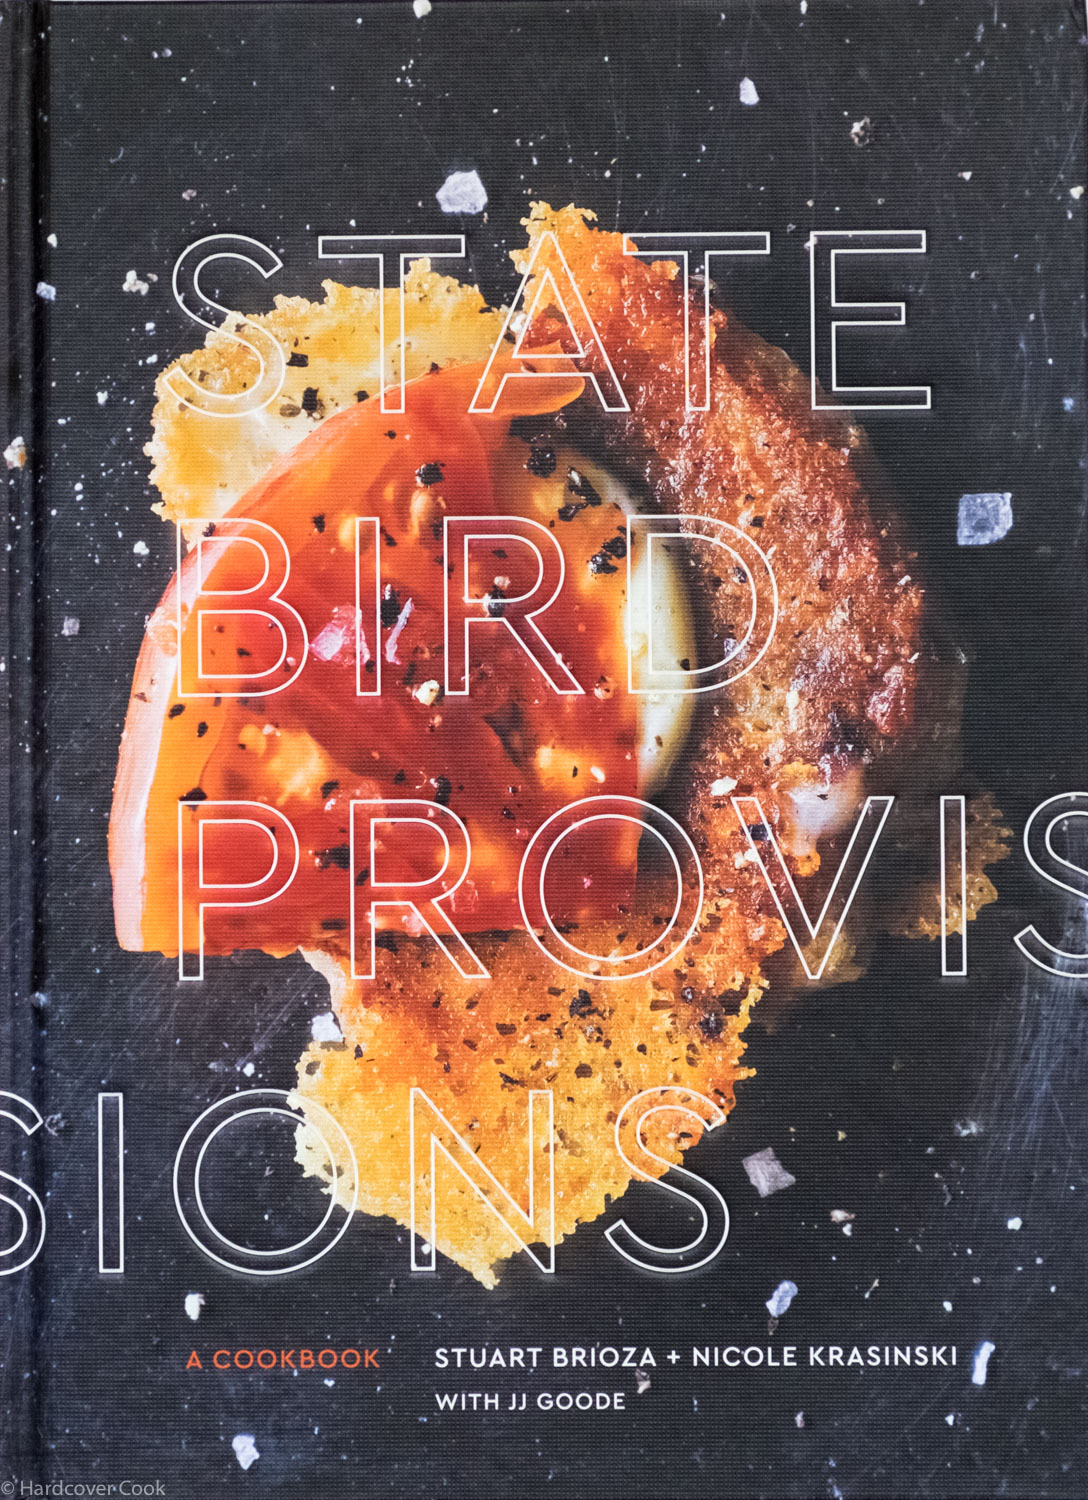 state-bird-provisions-cookbook.jpg